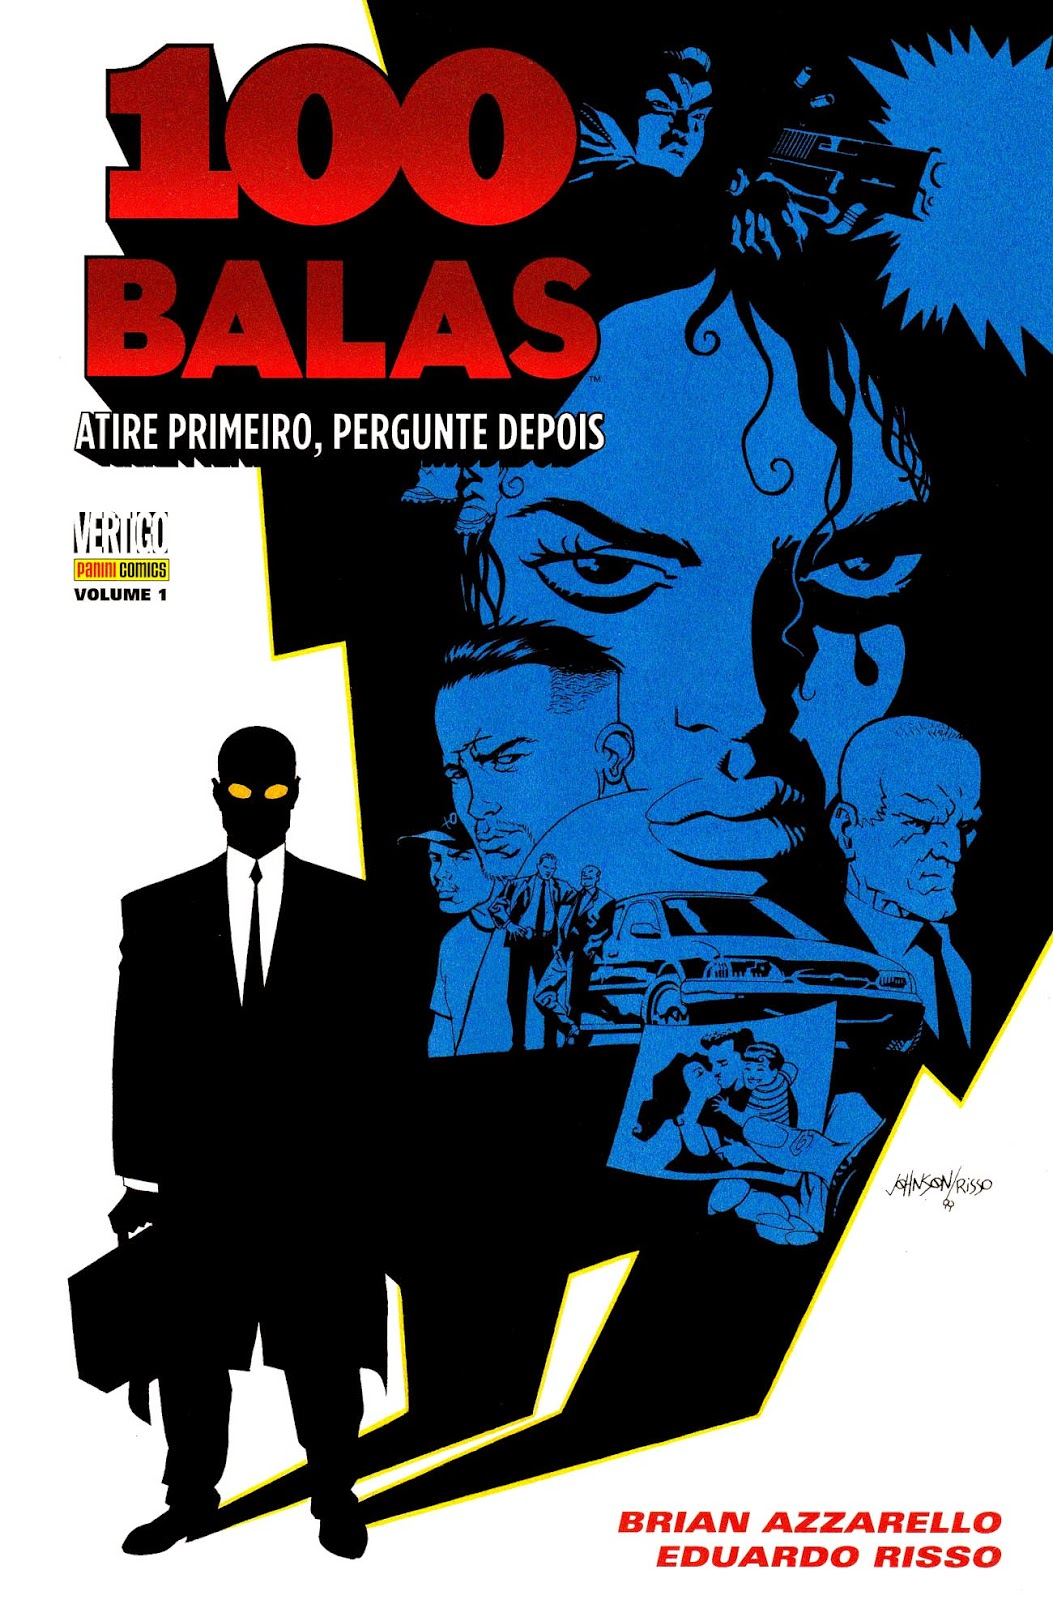 http://www.comix.com.br/advanced_search_result.php?keywords=100%20balas&sort=2a&page=2